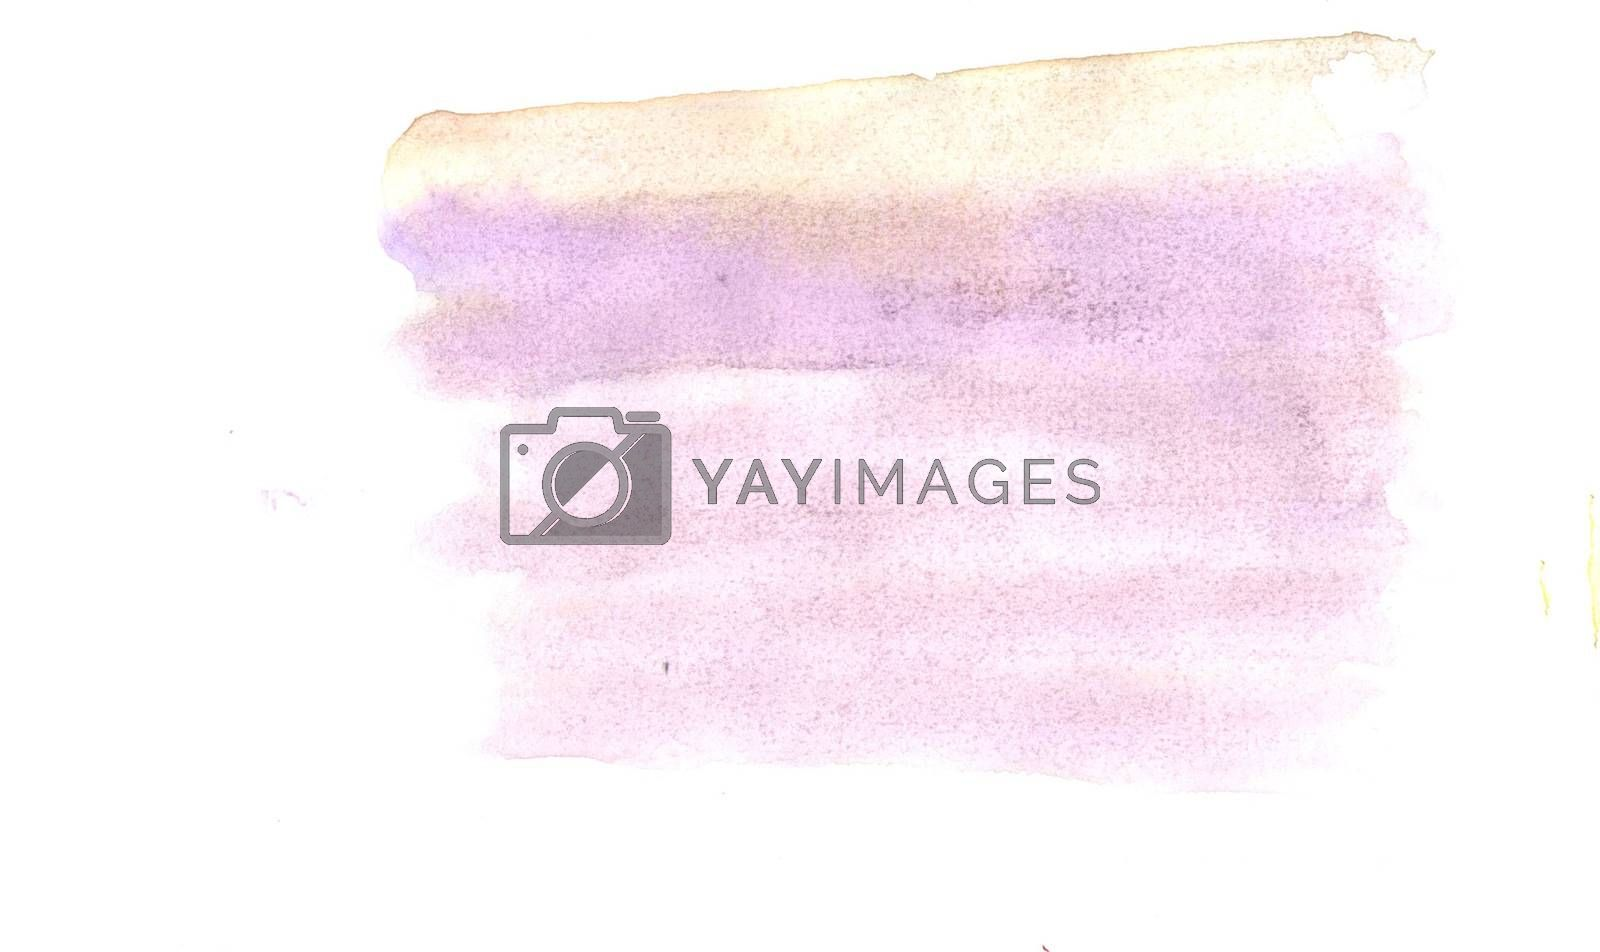 Watercolor illustrations drawn paints on white paper background by Prokopenko